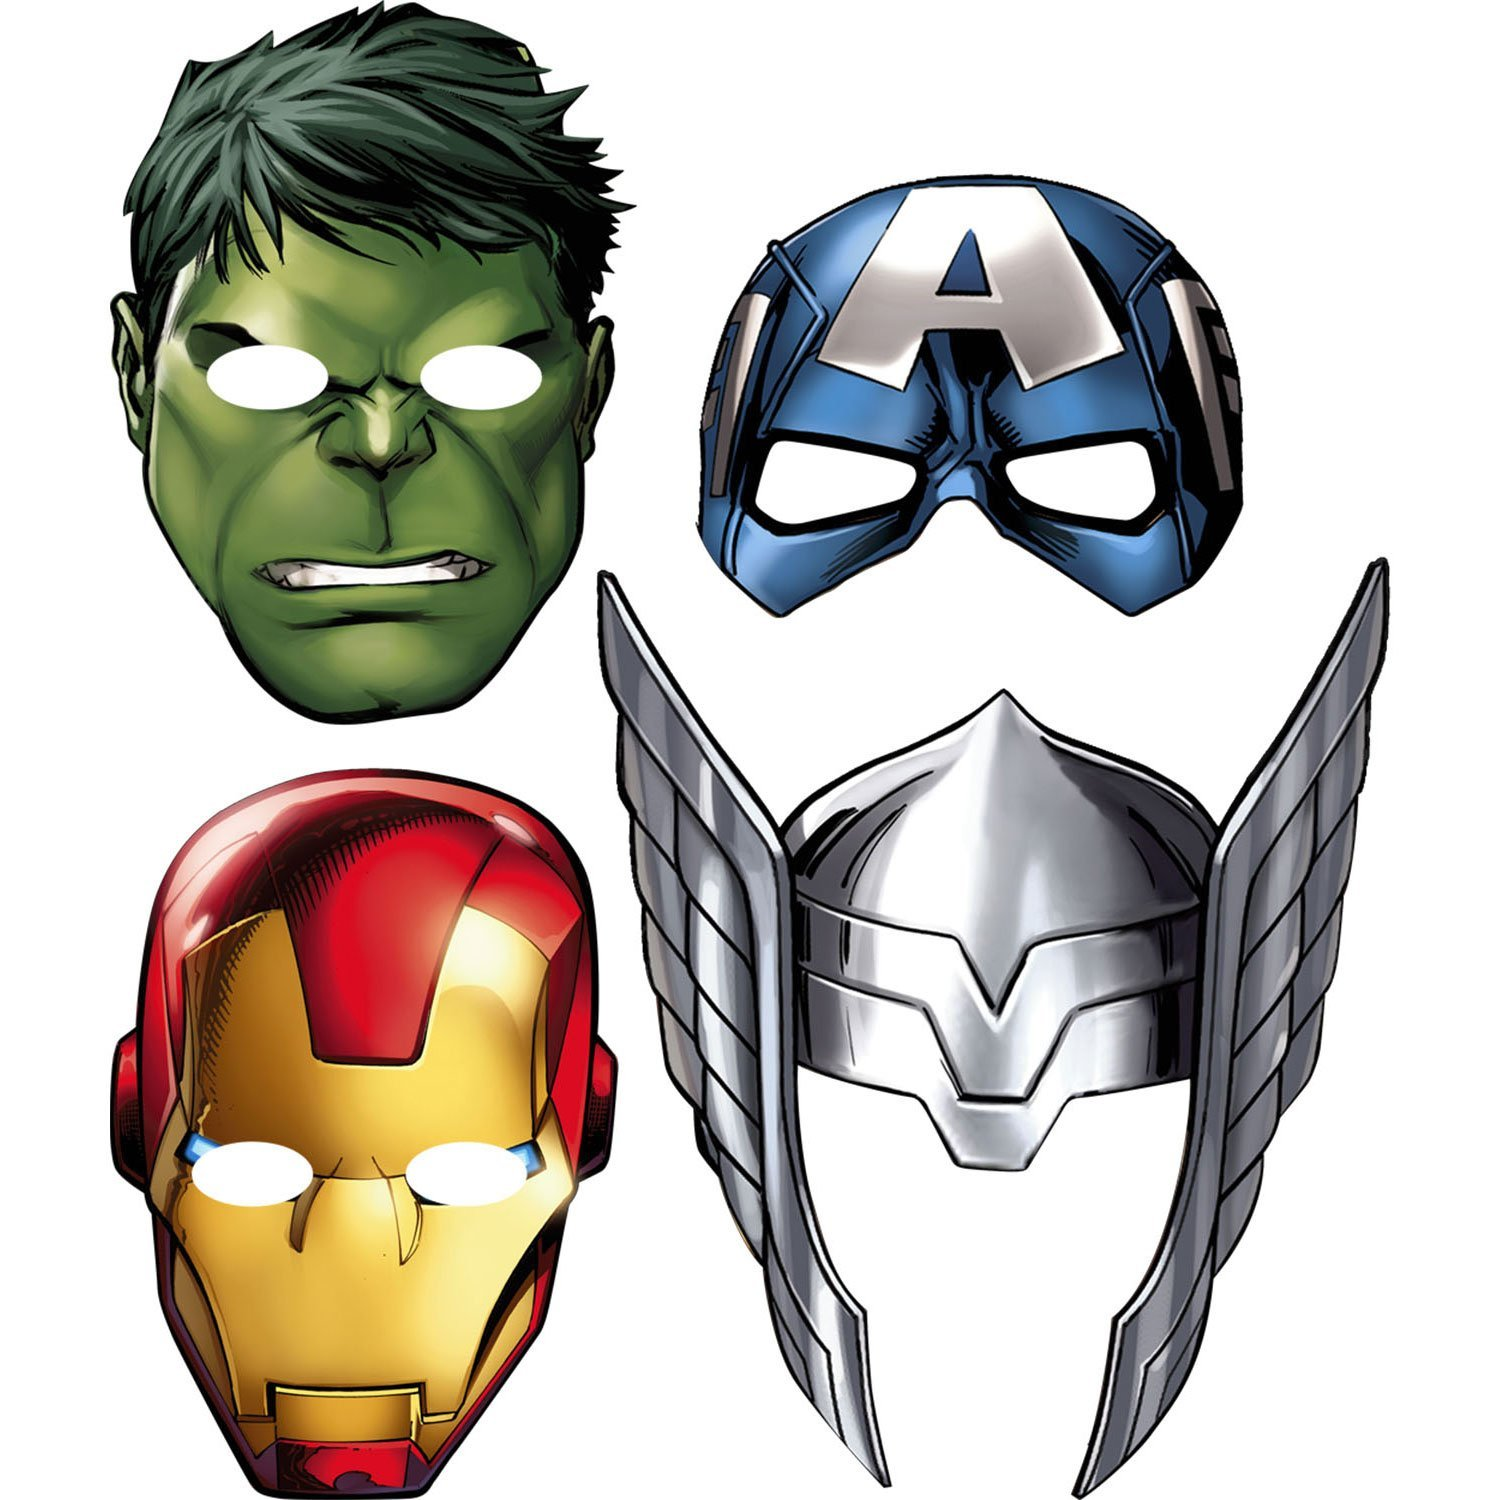 Amazon Deal: 8-Pack of Avengers Masks only $4.99 Shipped! - A Mitten ...